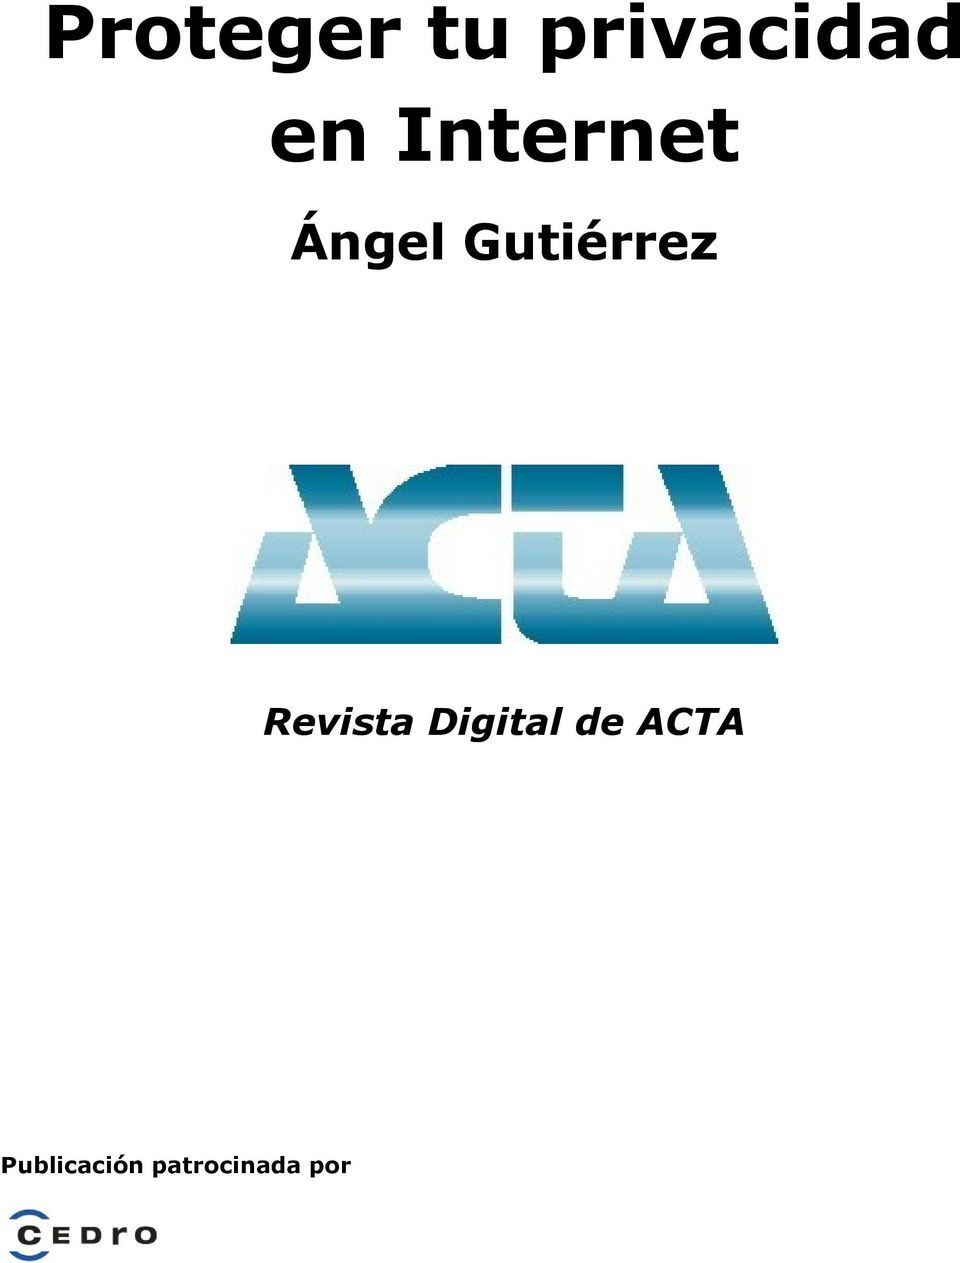 Revista Digital de ACTA